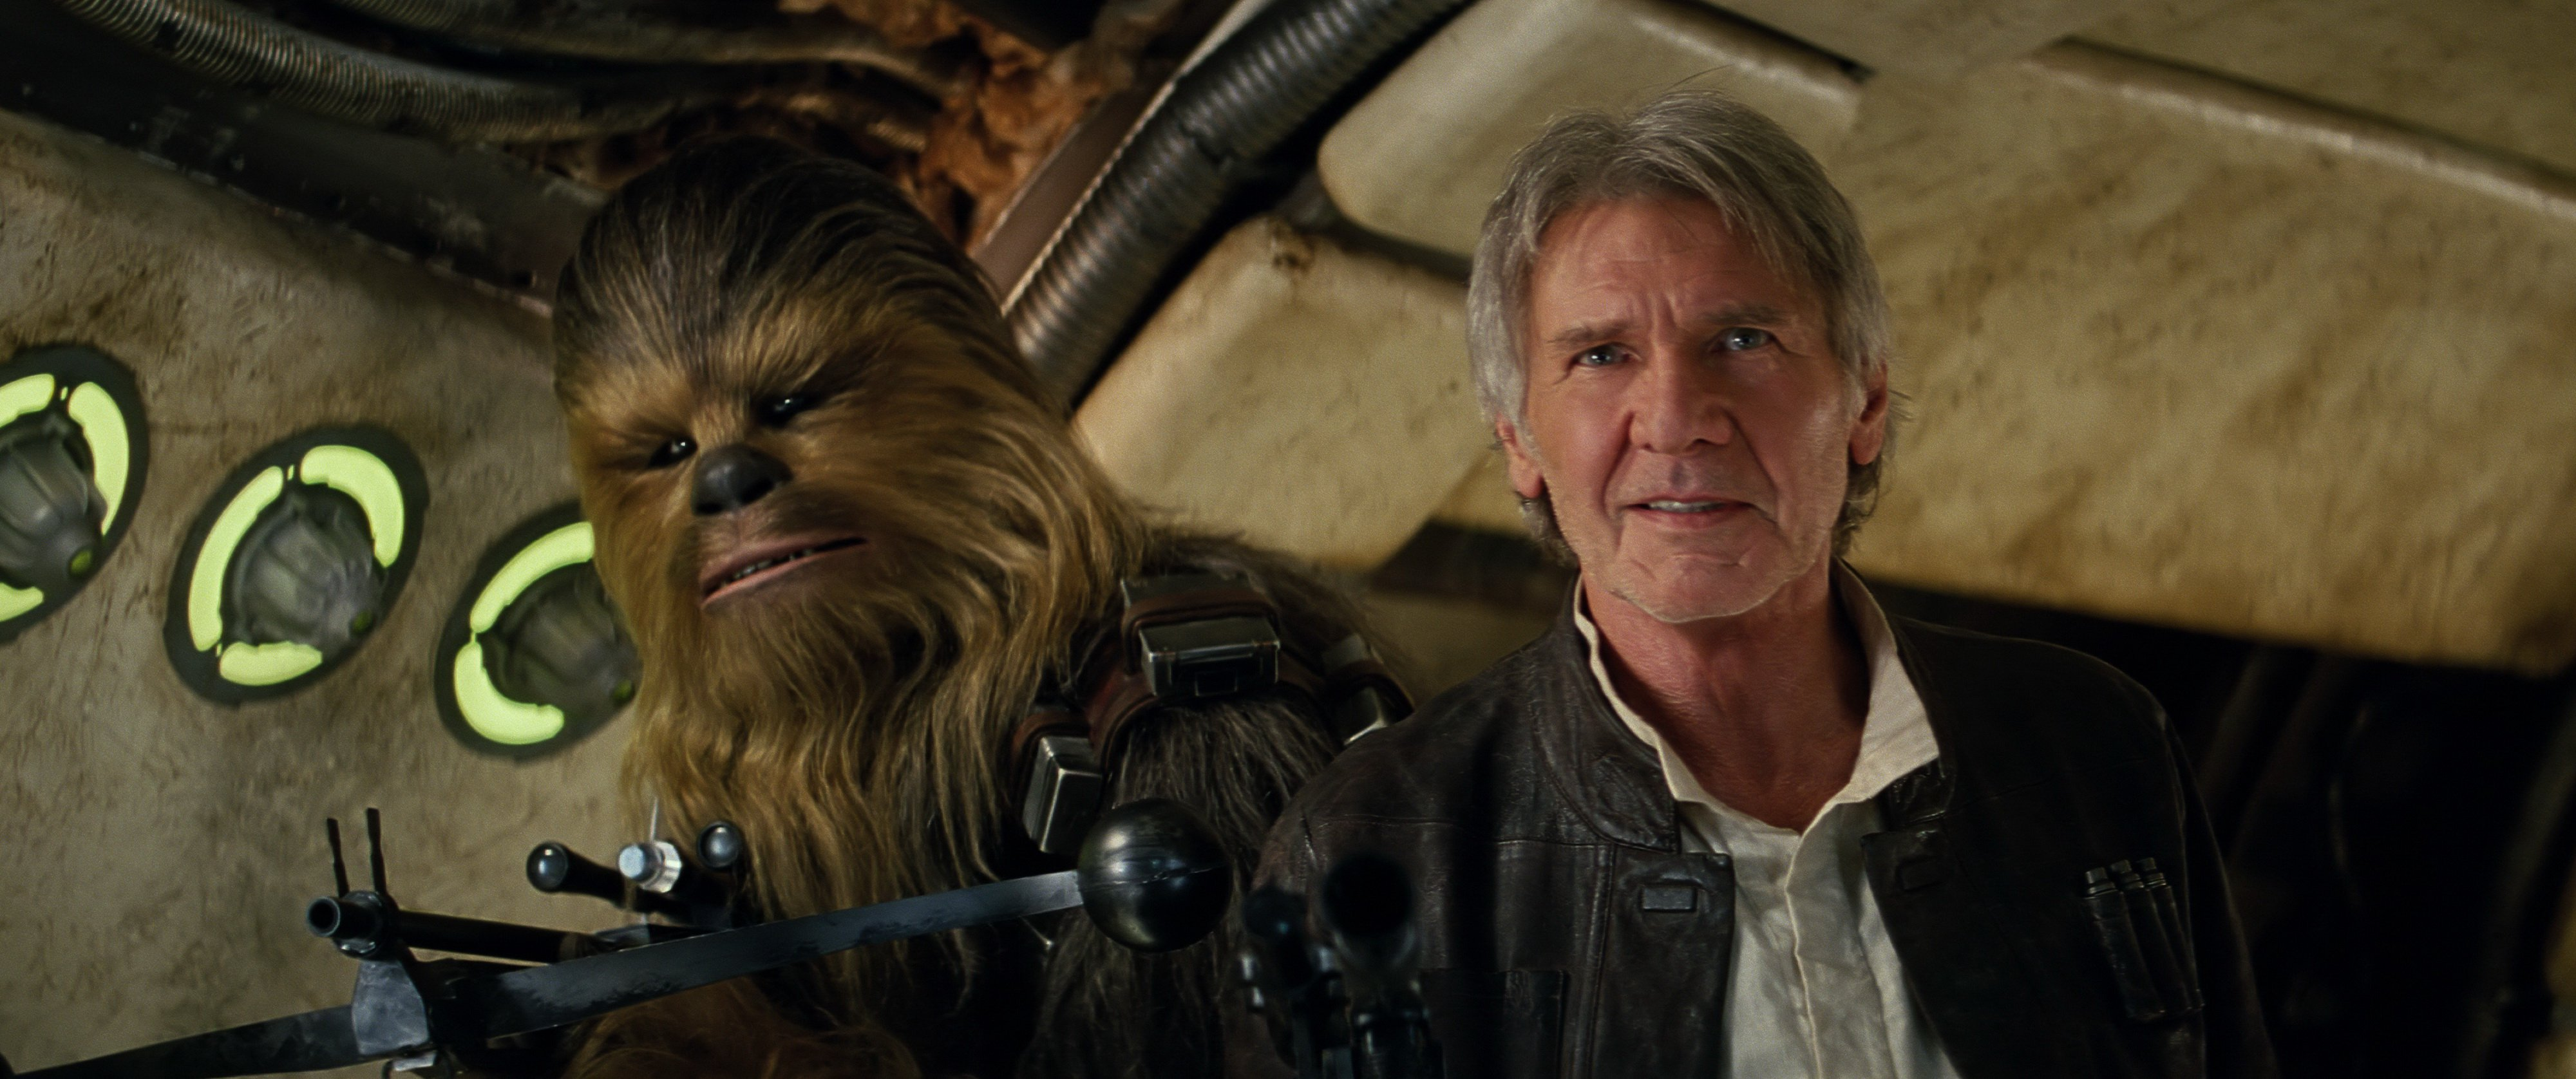 Star-Wars-The-Force-Awakens-han-solo-chewbacca.jpg